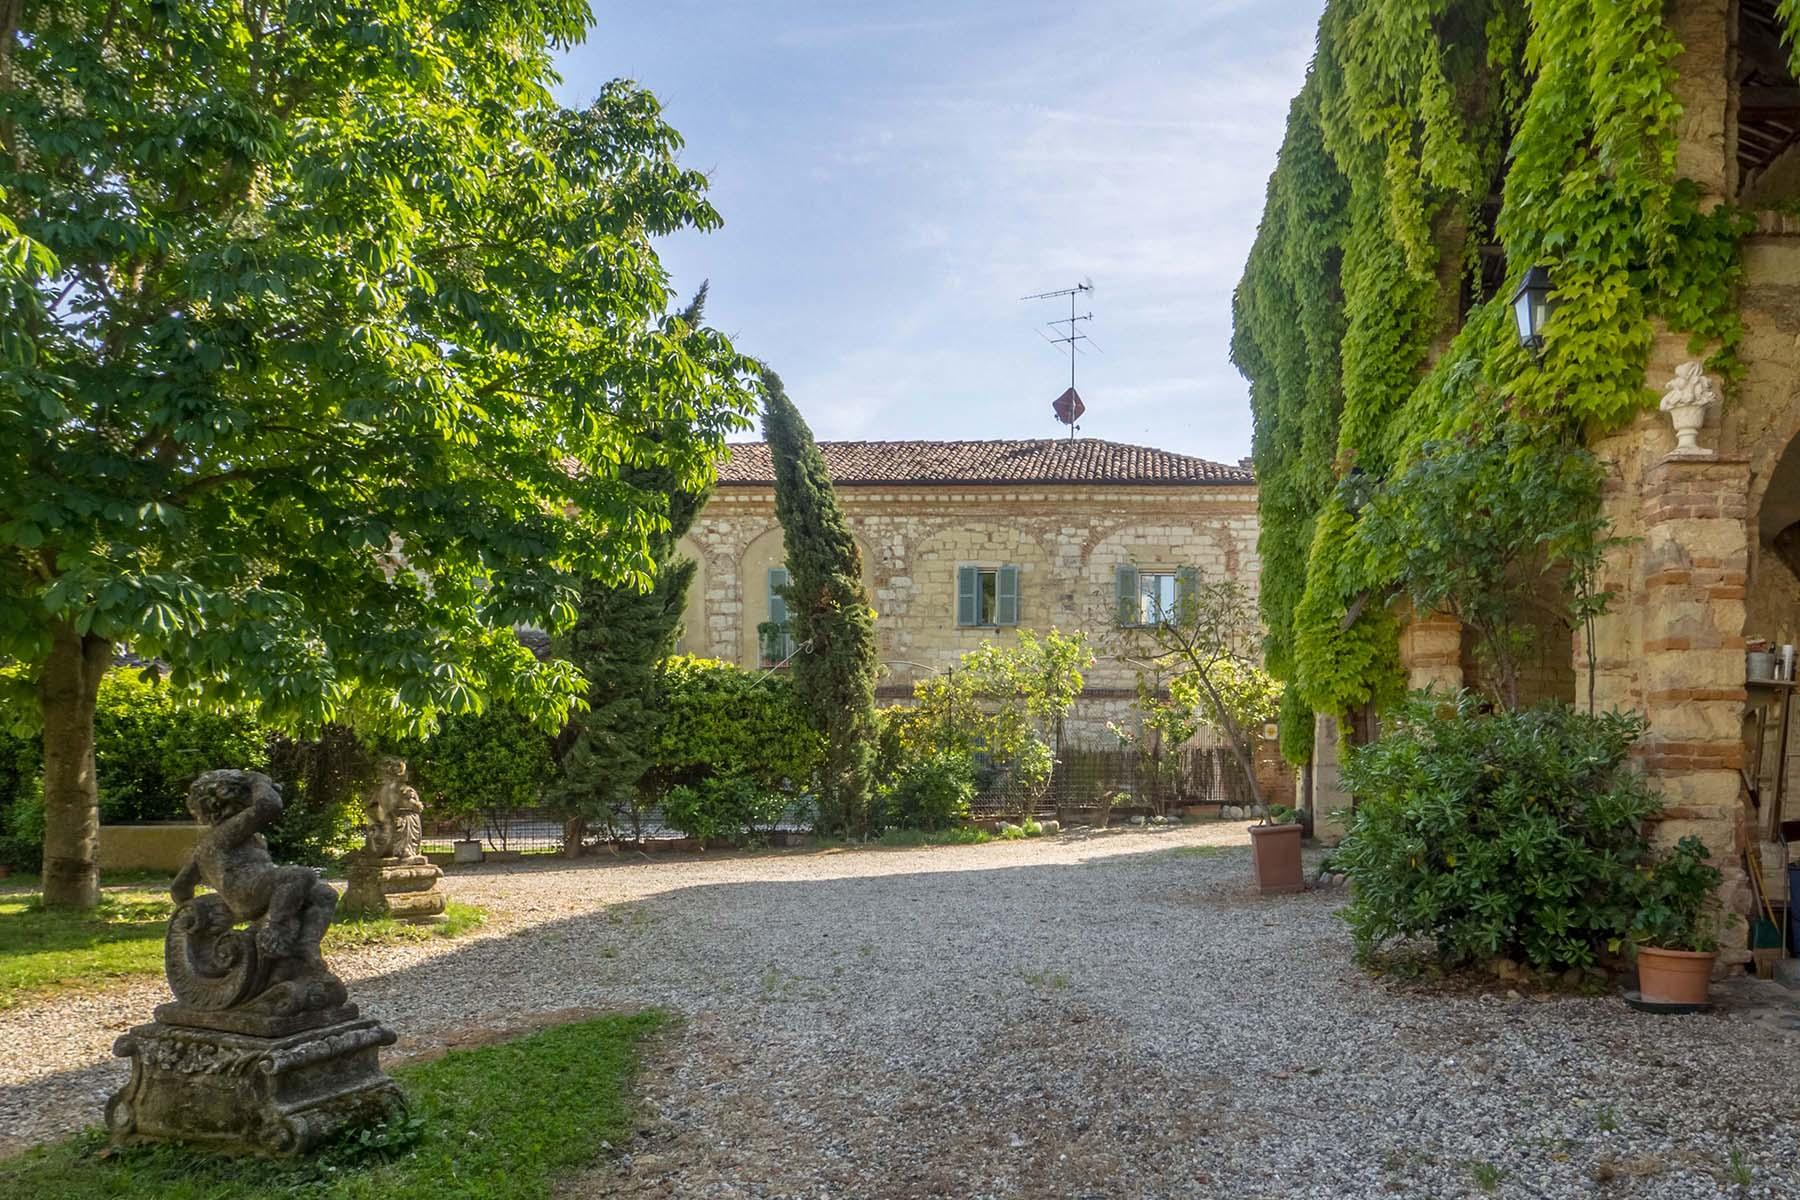 Enchanting historical villa in the heart of the Monferrato region - 30